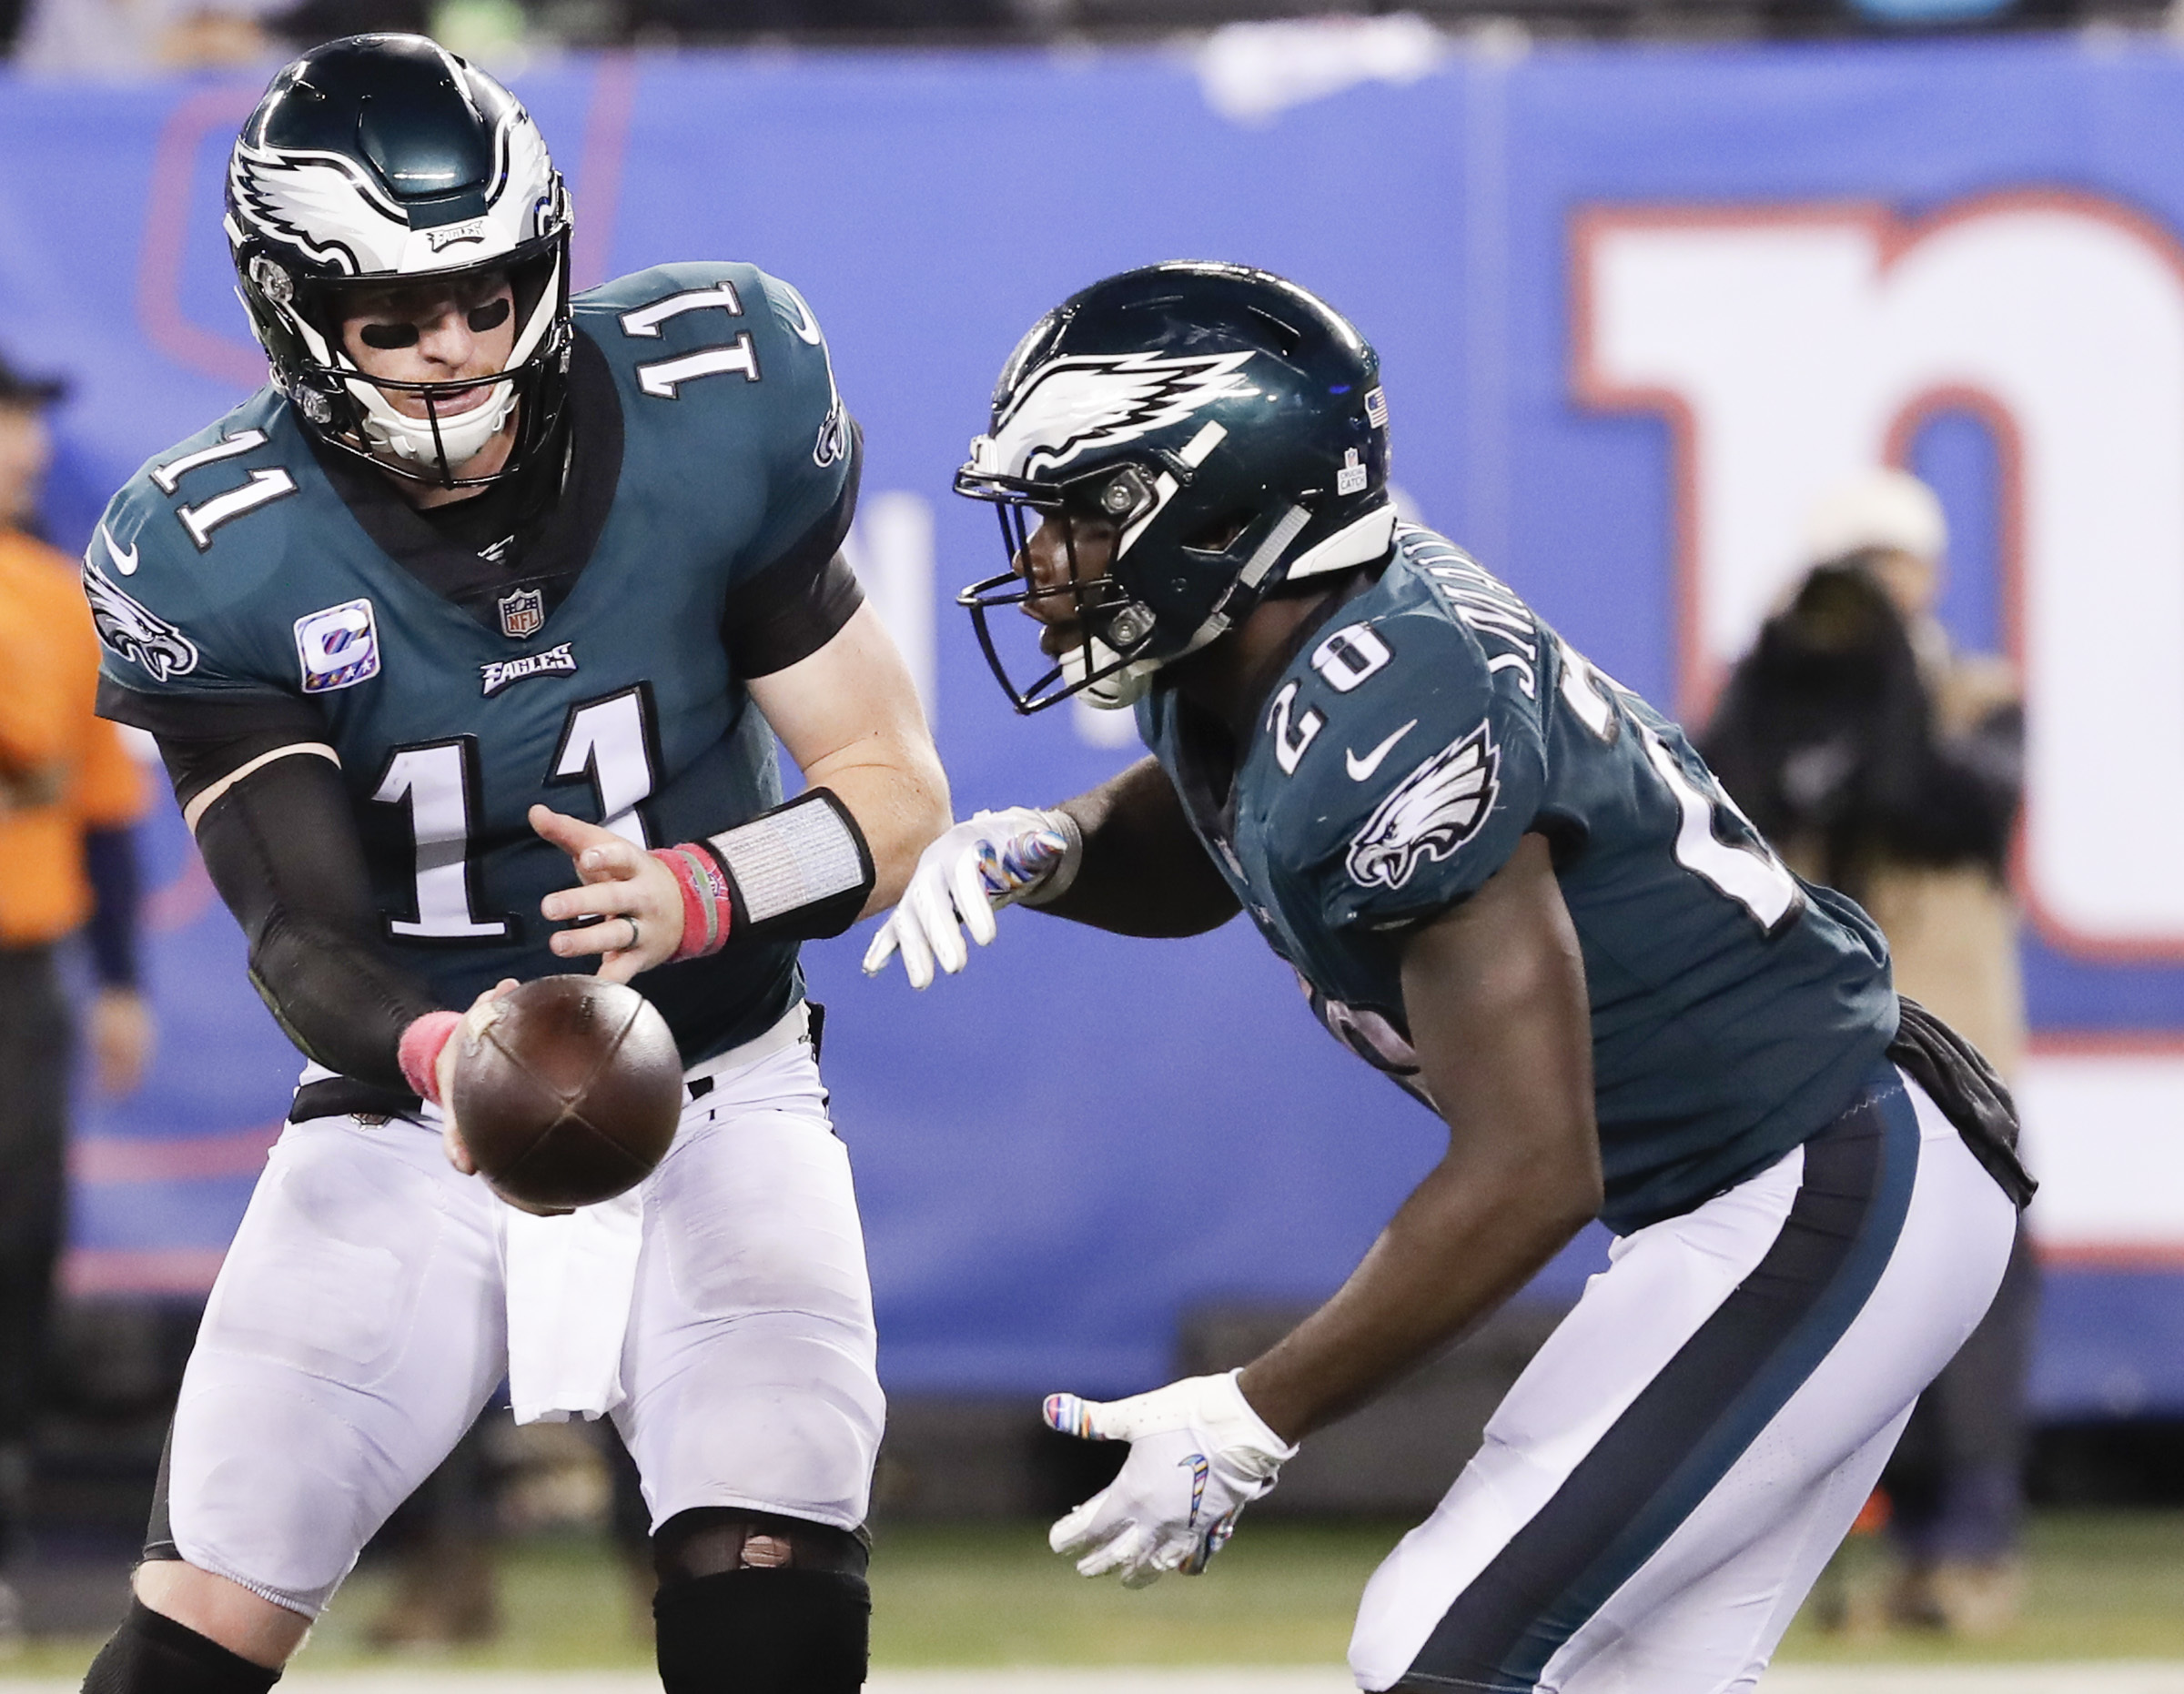 Eagles quarterback Carson Wentz hands off the football all to running back Wendell Smallwood against the New York Giants on Thursday, October 11, 2018 in East Rutherford, NJ. YONG KIM / Staff Photographer